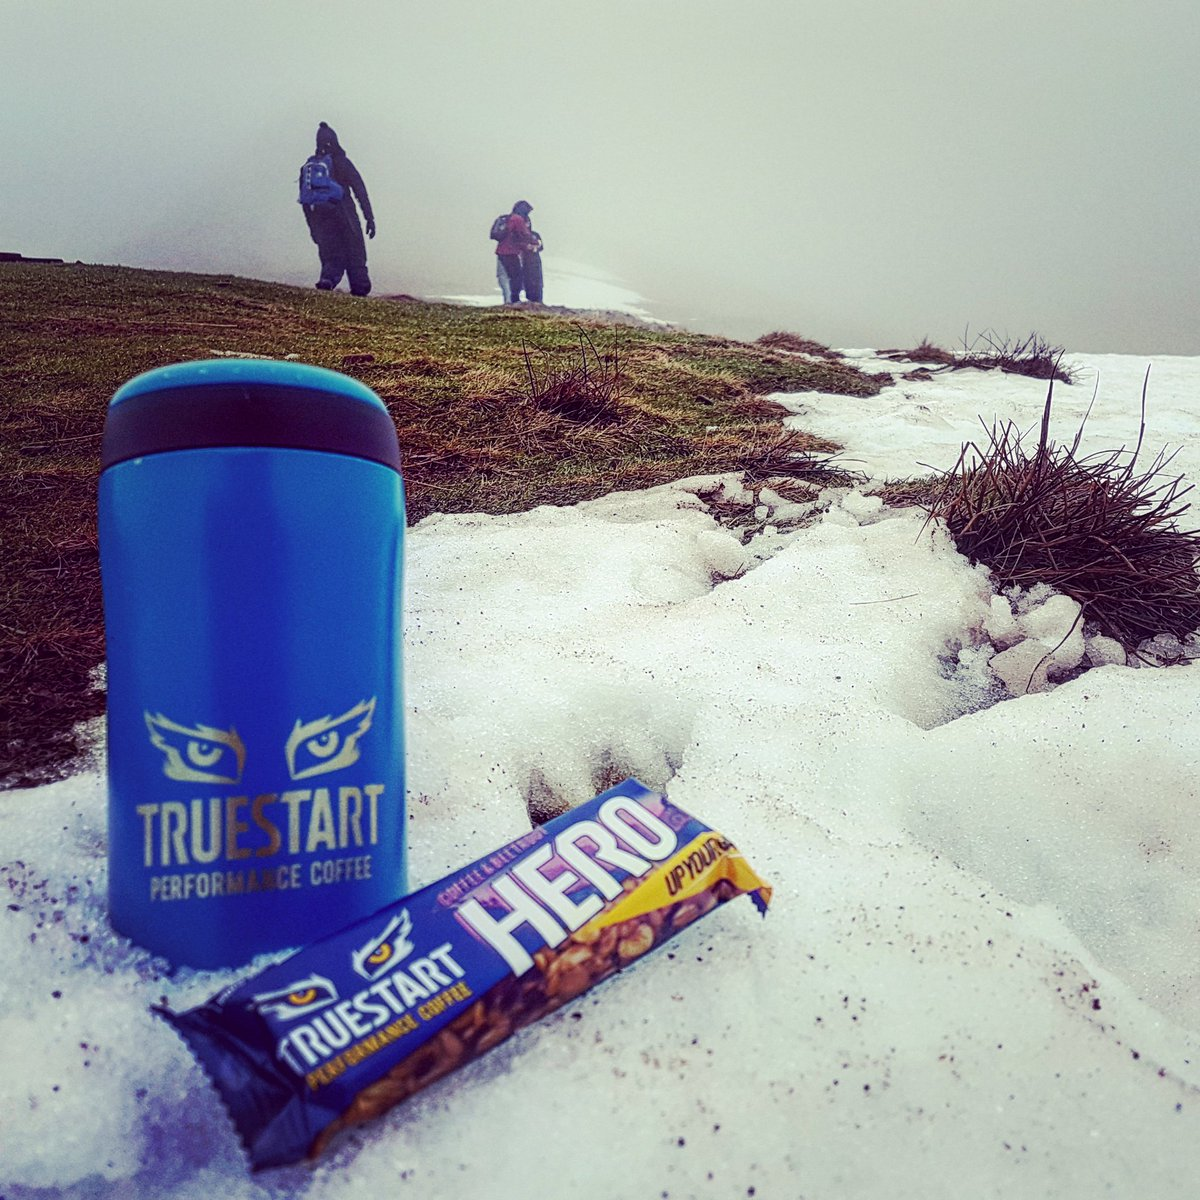 Keeping warm up in the #BreconBeacons today! #TEAMTRUESTART #UPYOURGAME #wymtm #penyfan https://t.co/0EiHfIiZsv